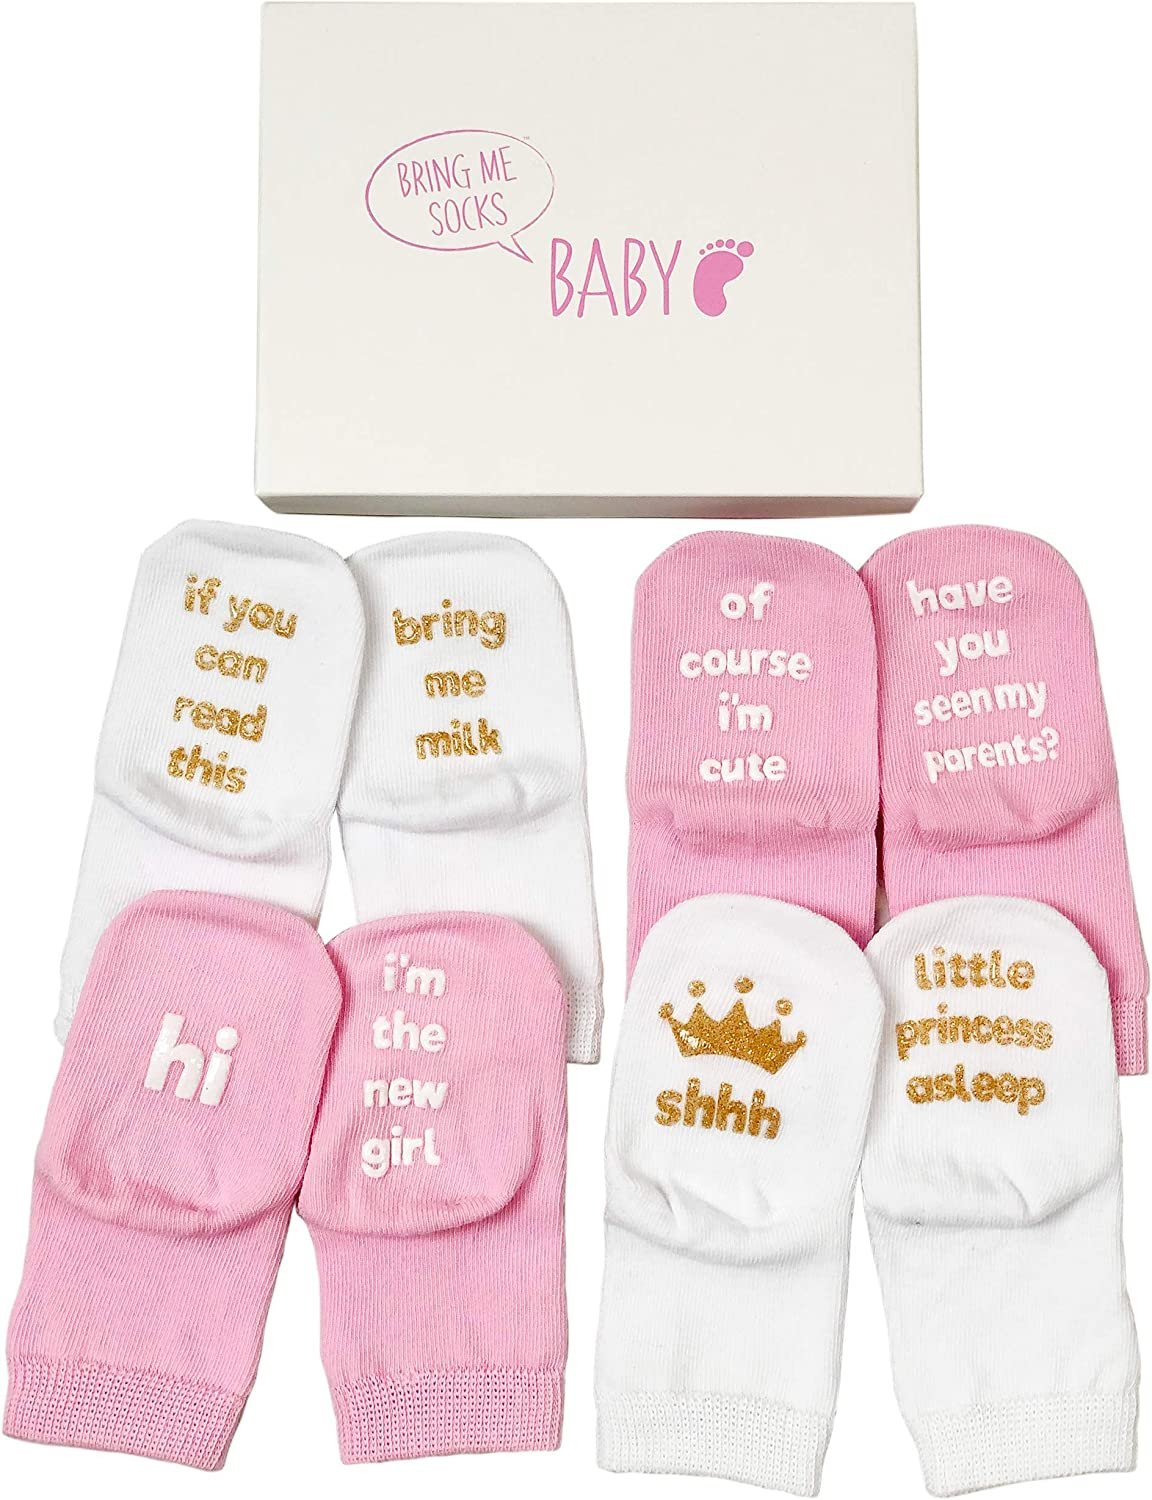 Baby Girl Socks Gift Set - Unique Baby Shower or Newborn Gift For Her - 4 Pairs of Cute Quotes in Gift Box